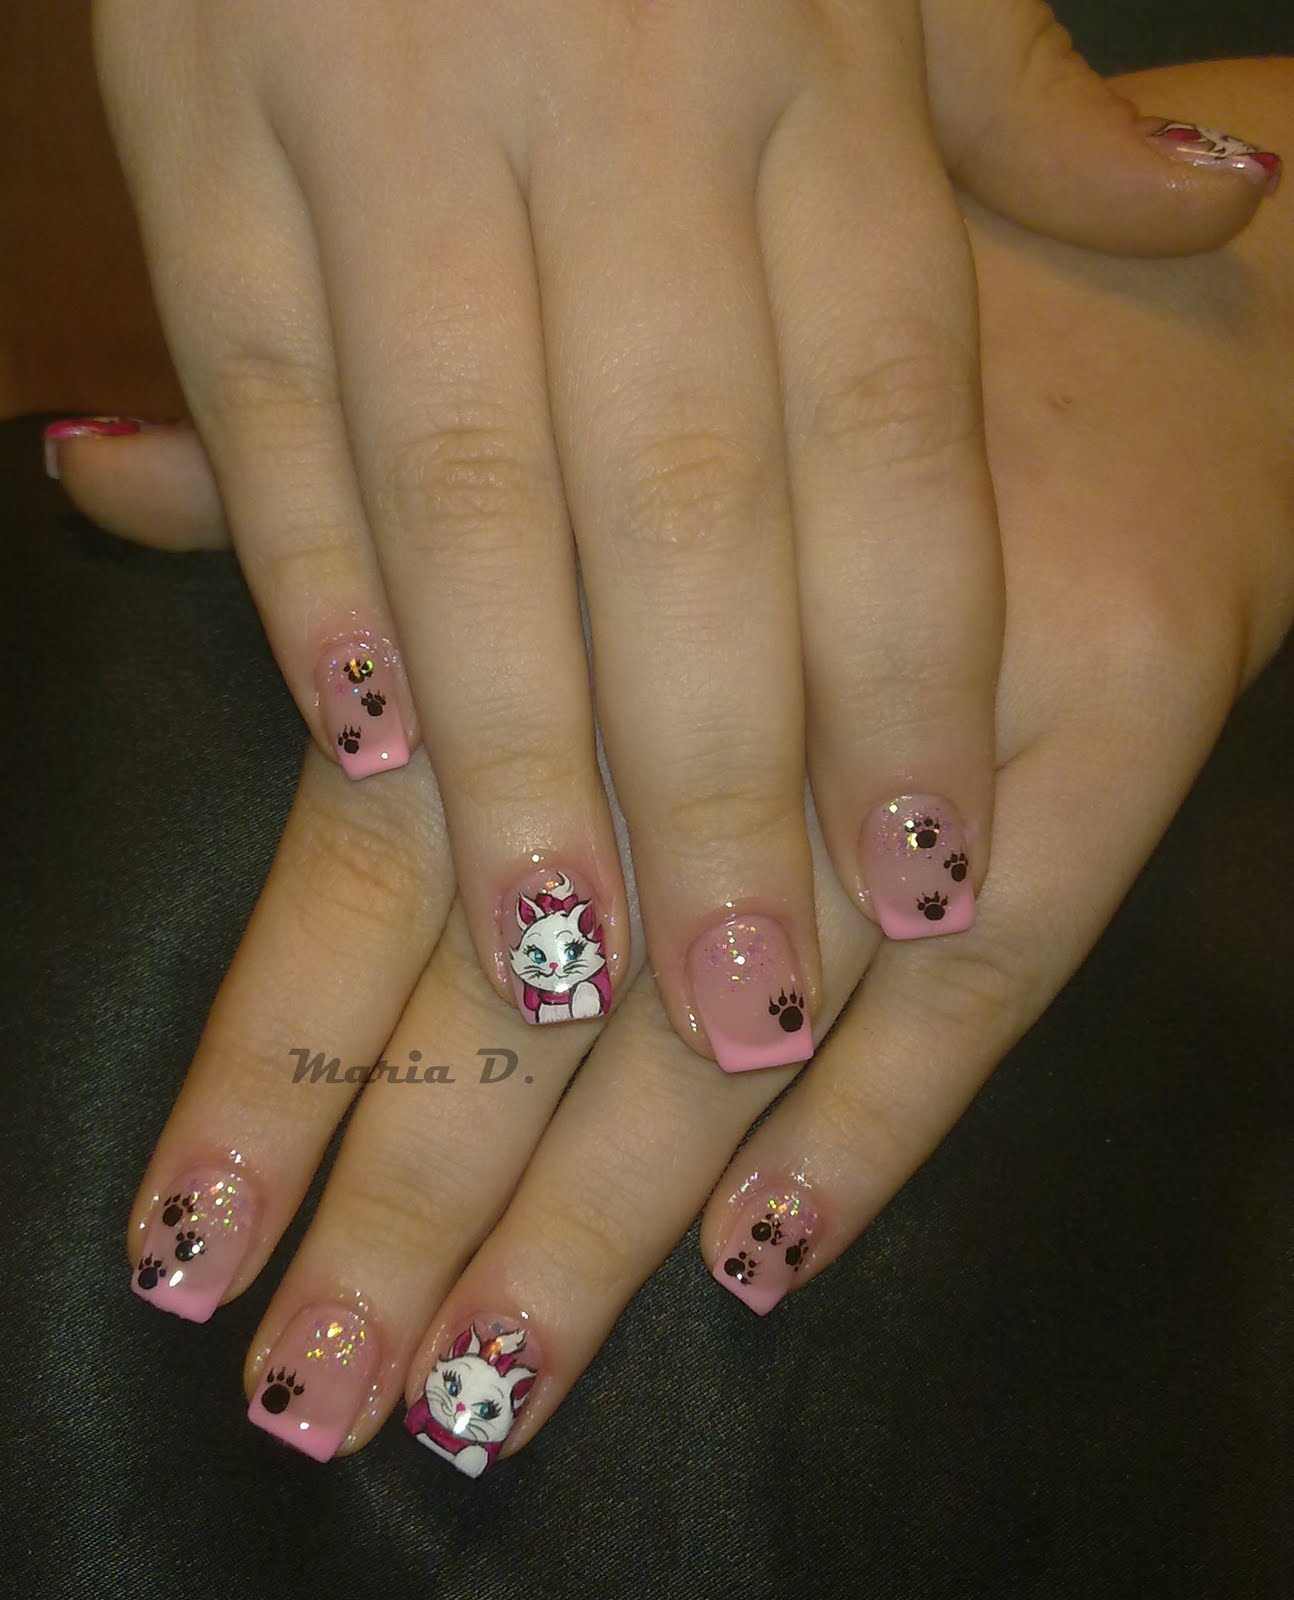 Shiny-Nails by Maria D.: Marie - The Aristocats by Disney